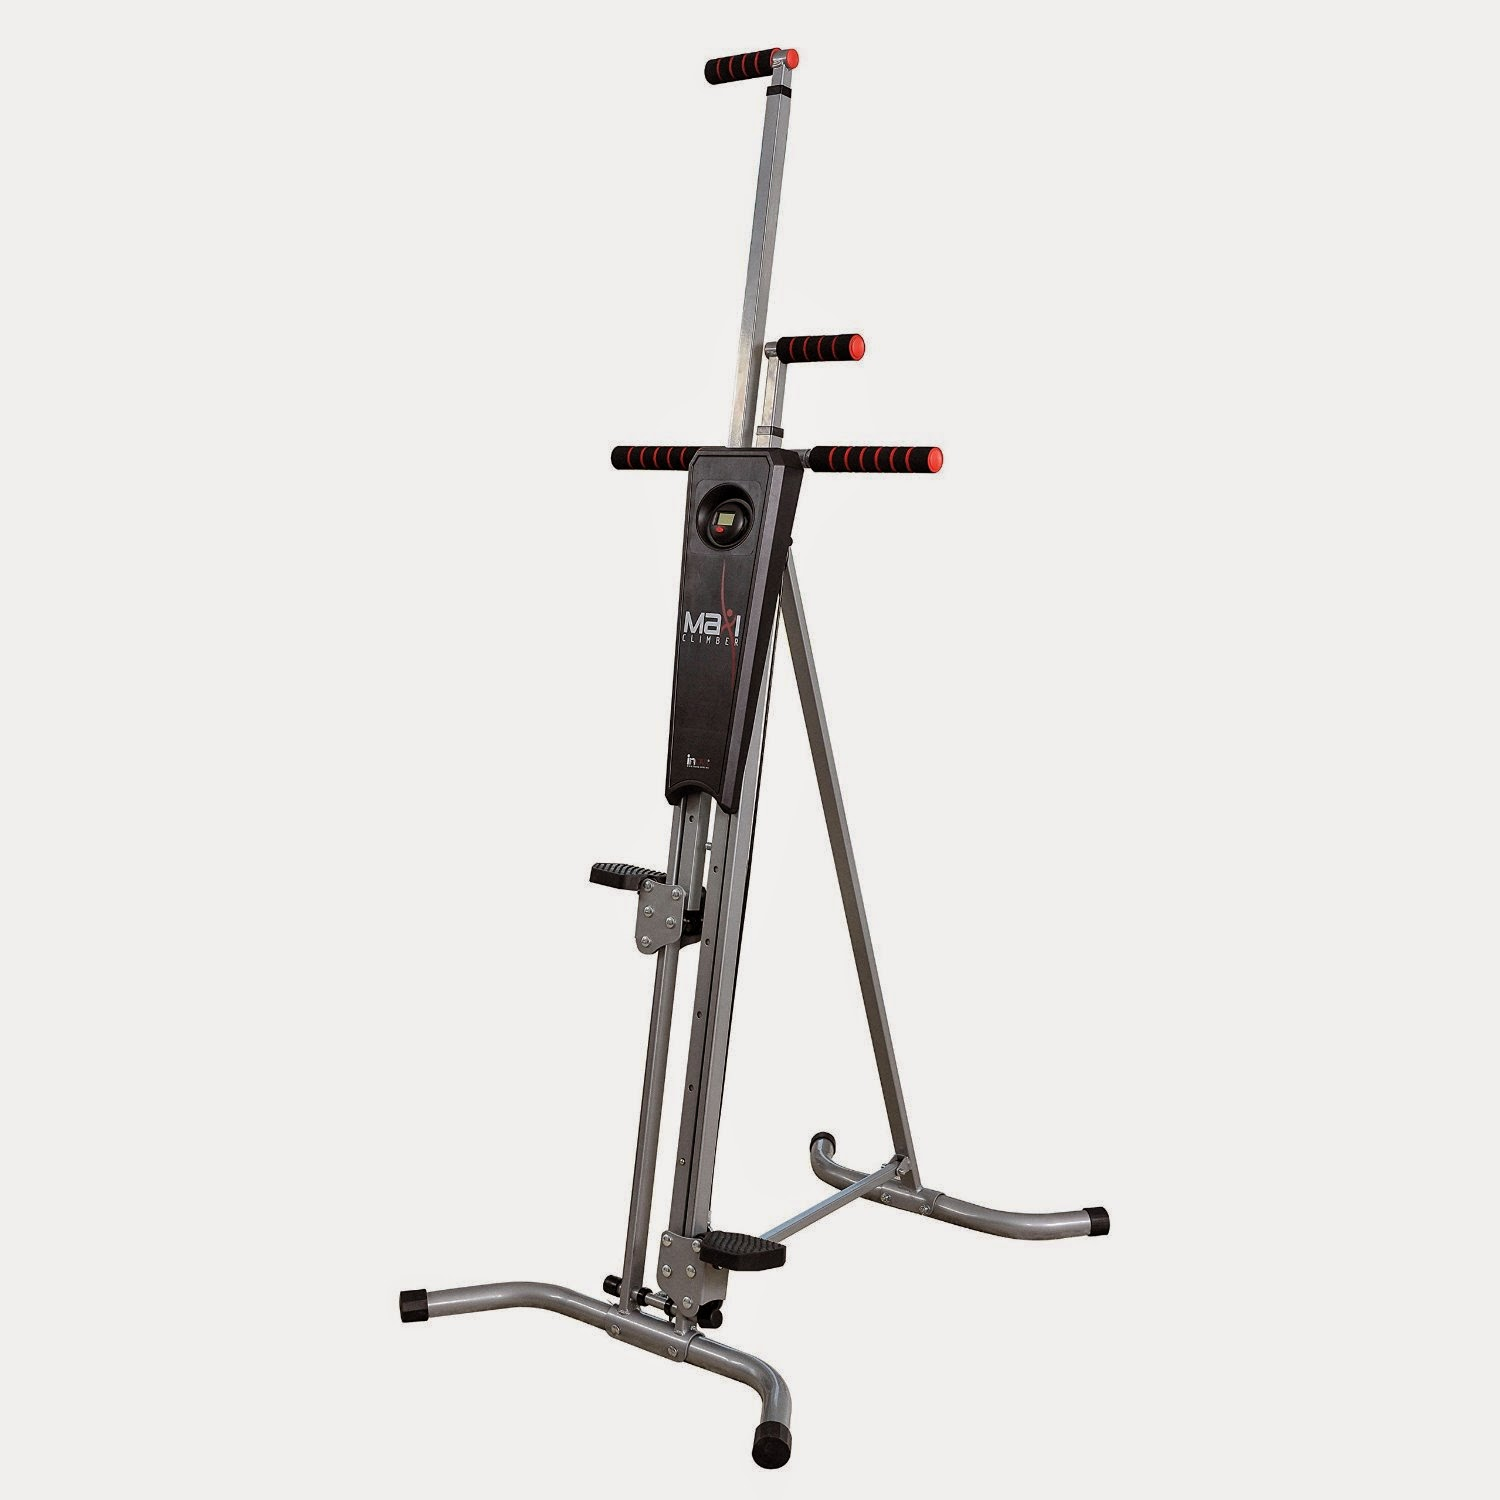 Maxi Climber Vertical Climber, review, sculpt and tone your legs, abs, triceps, biceps, targets all major muscle groups, workout similar to rock climbing, ergonomically designed and adjustable, folds for storage